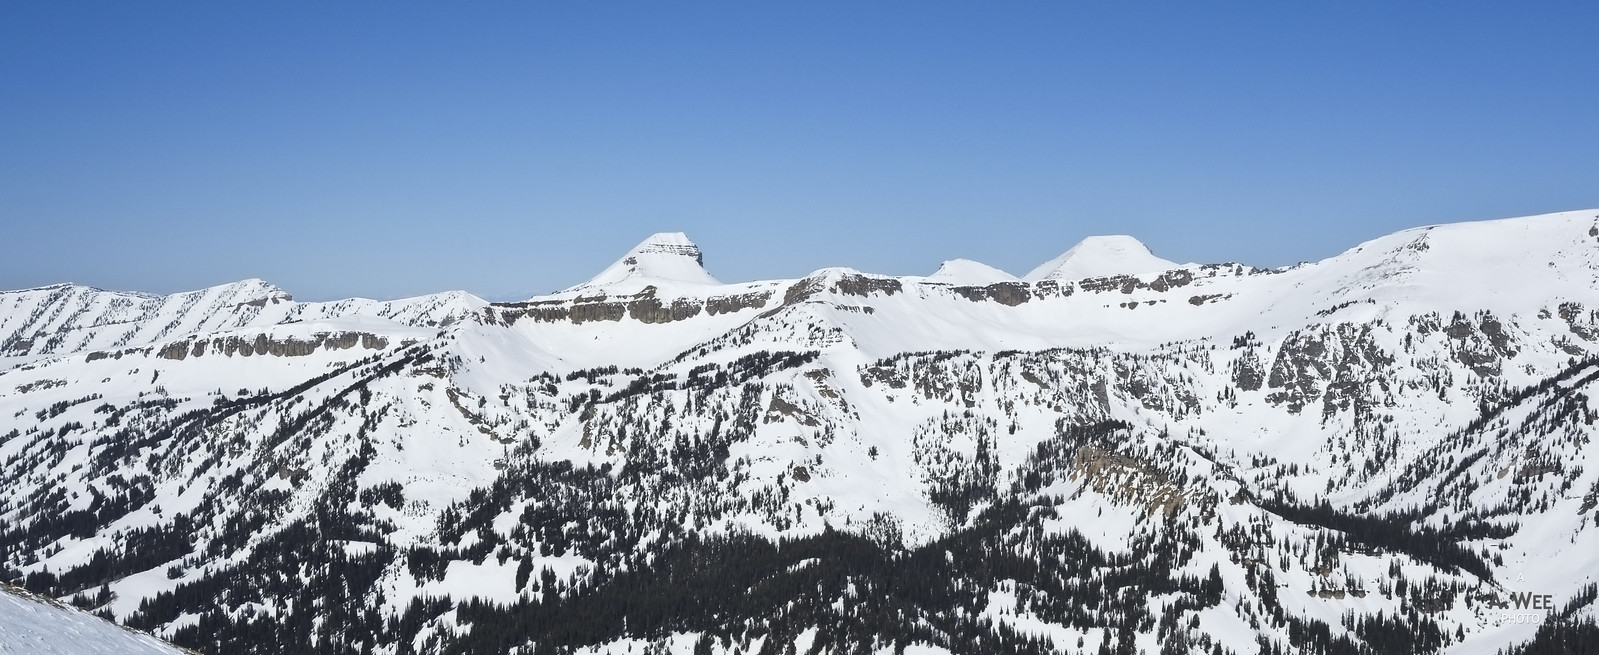 Panorama of the Grand Teton Range